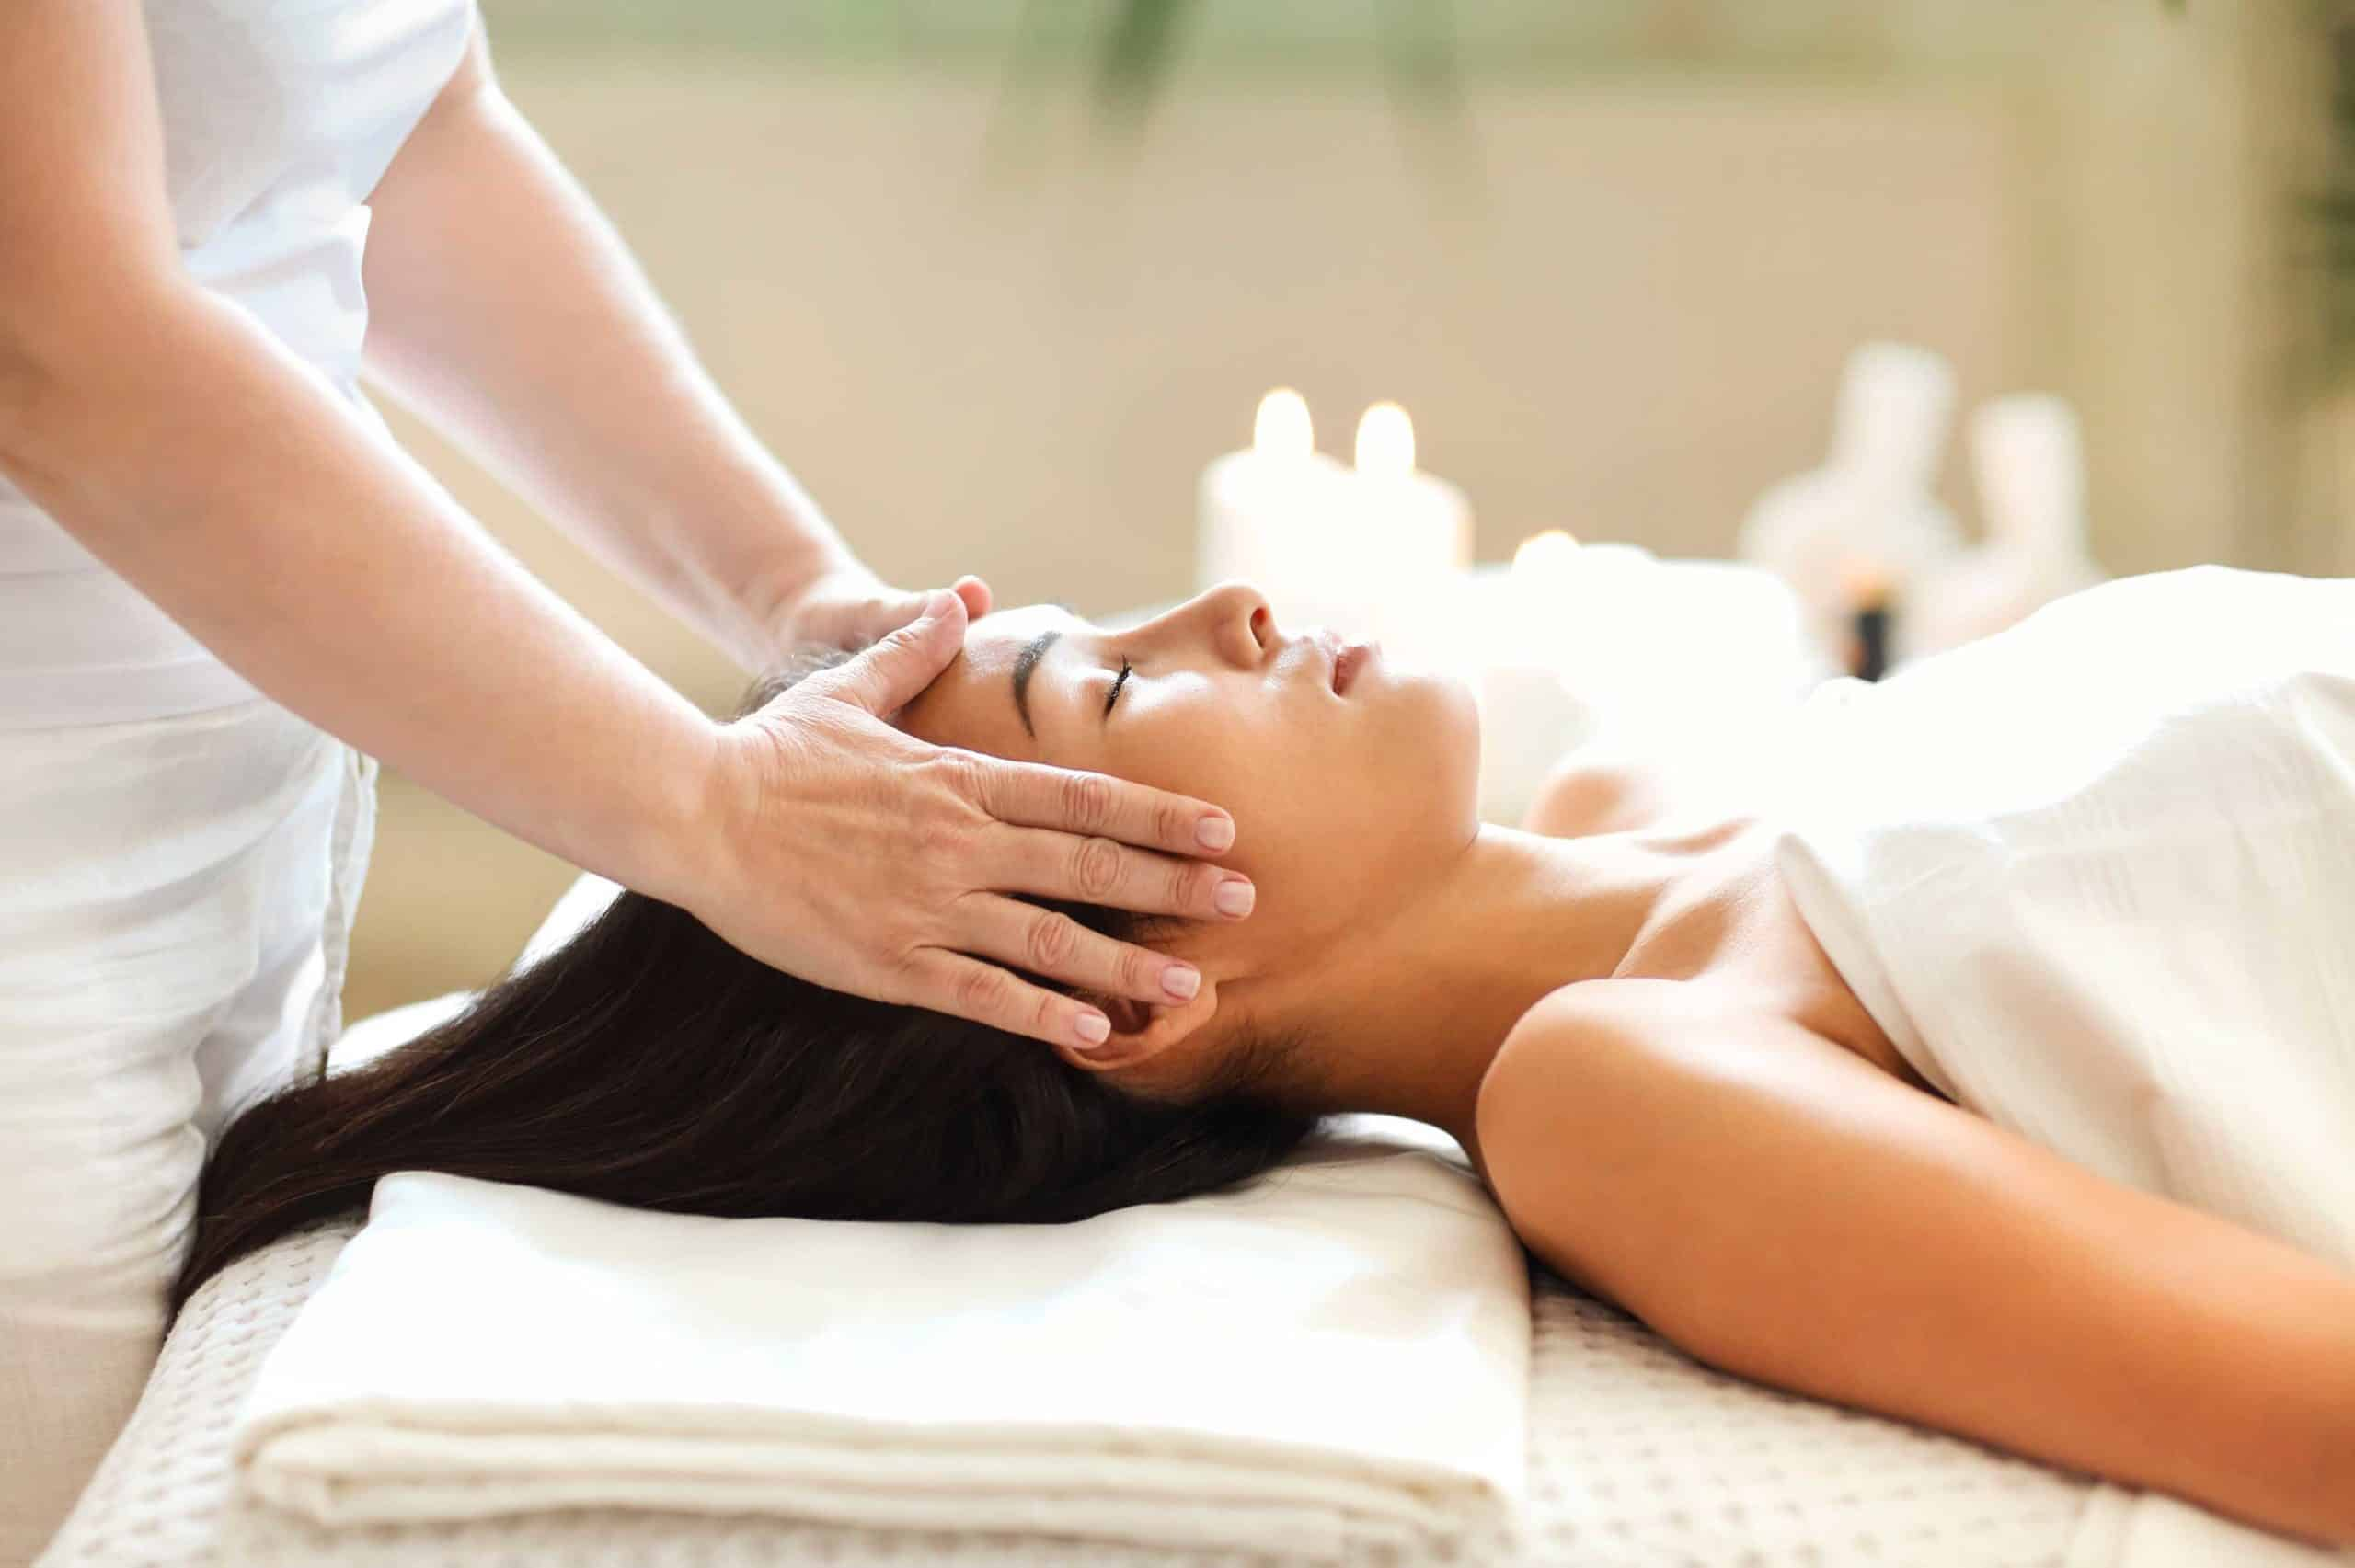 asian woman resting during spa procedure woman spa relax salon session eyes closed lying client t20 6YVzxY